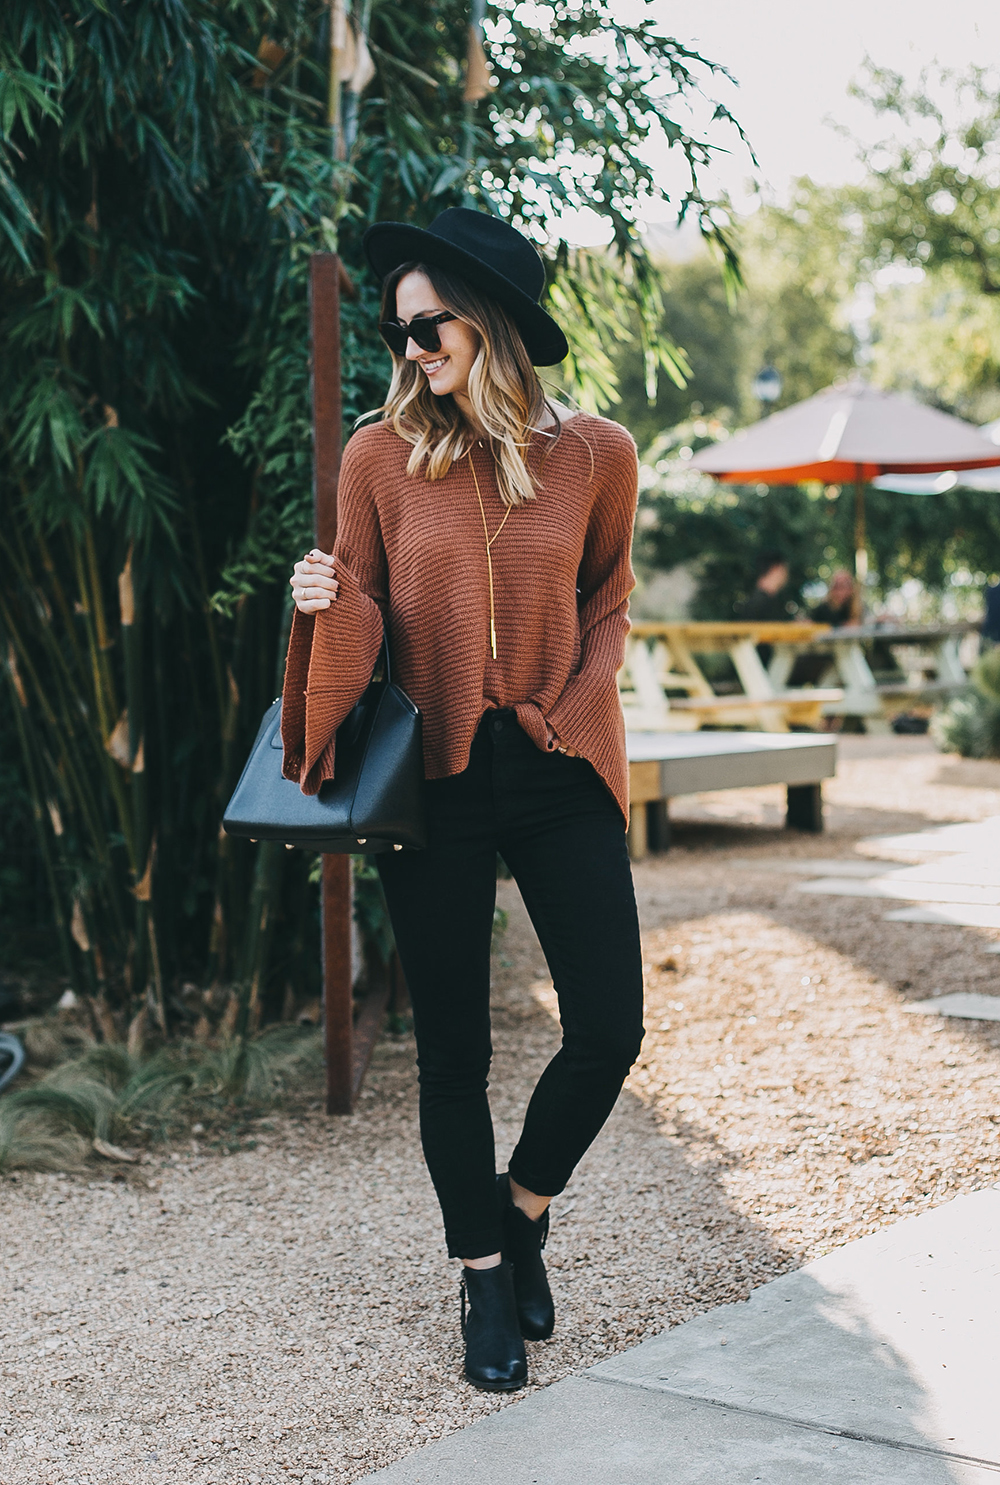 livvyland-blog-olivia-watson-austin-texas-fashion-lifestyle-blogger-fall-orange-slouchy-sweater-black-skinny-jeans-outfit-boho-fall-idea-8